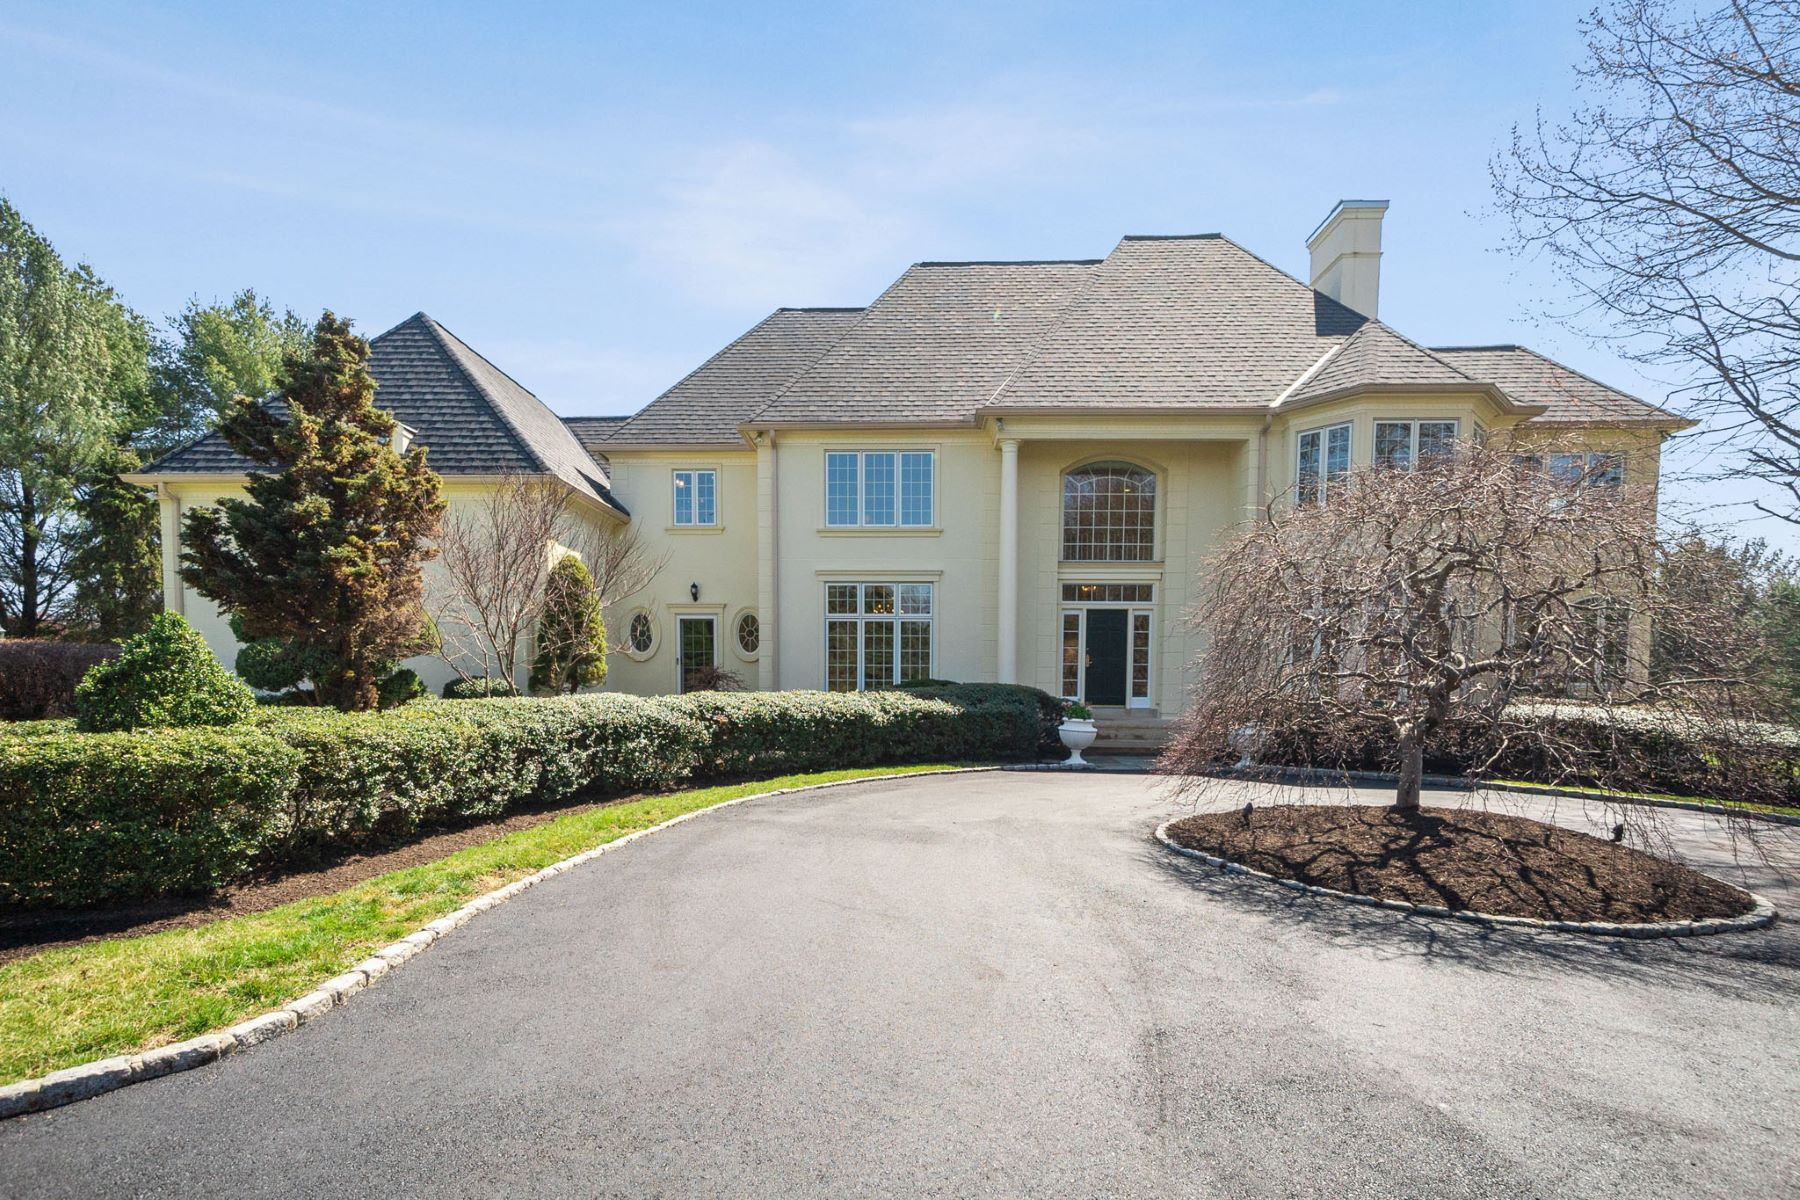 Single Family Homes for Sale at 1280 Continental Line Ln., West Chester, PA 19382 1280 Continental Line Ln. West Chester, Pennsylvania 19382 United States